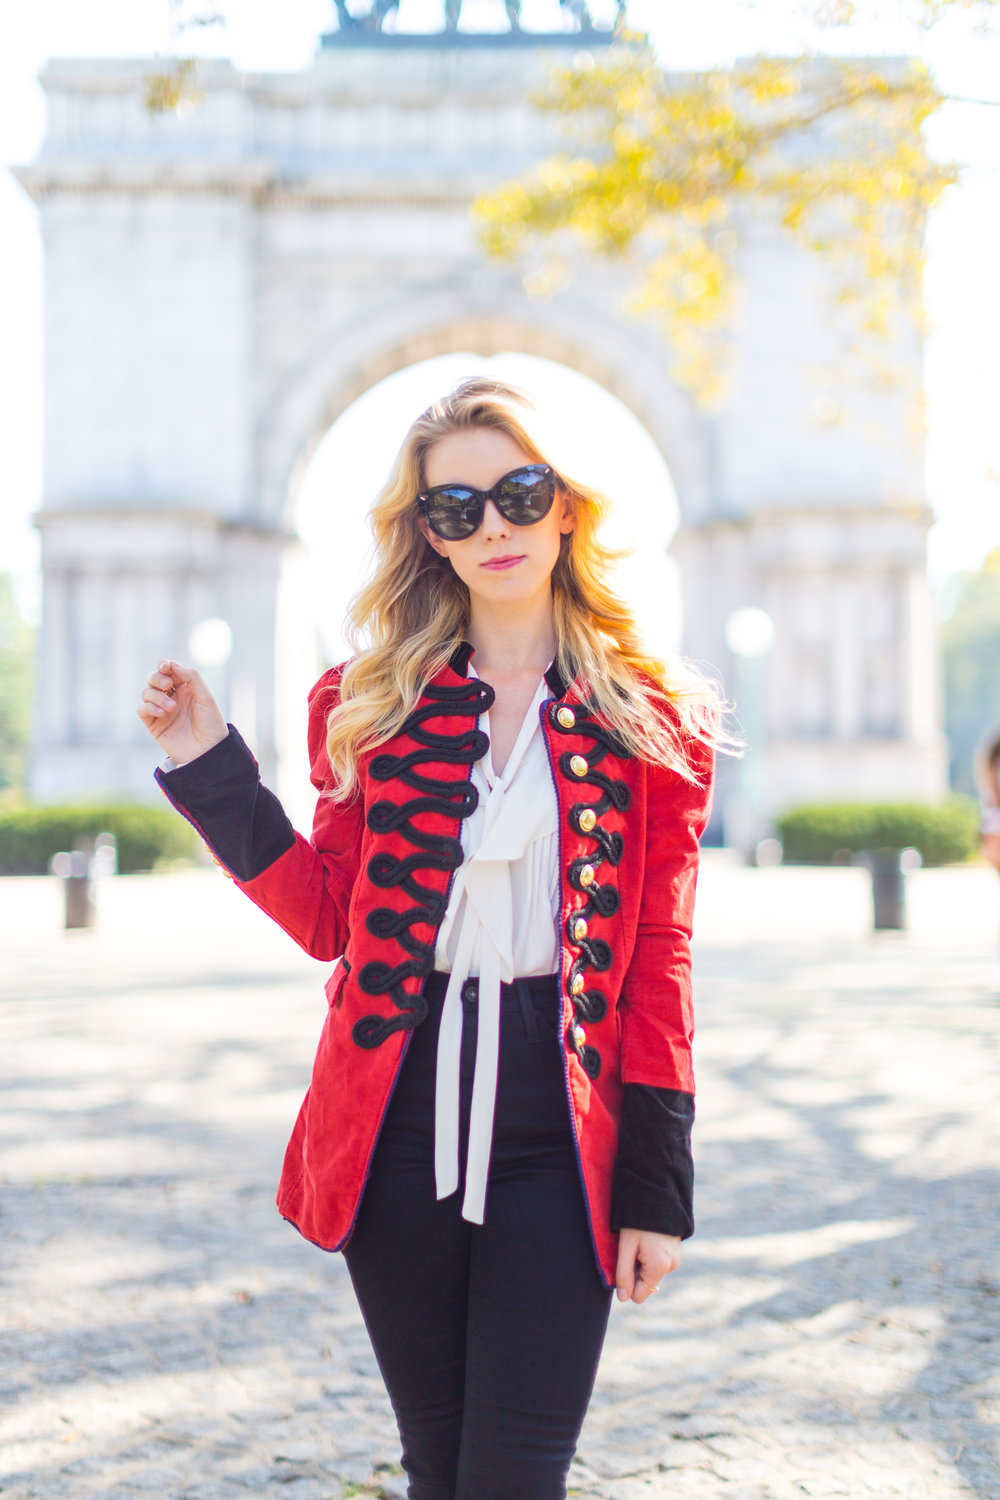 Fall Fashion Red Band Jacket Trendy-3.jpg